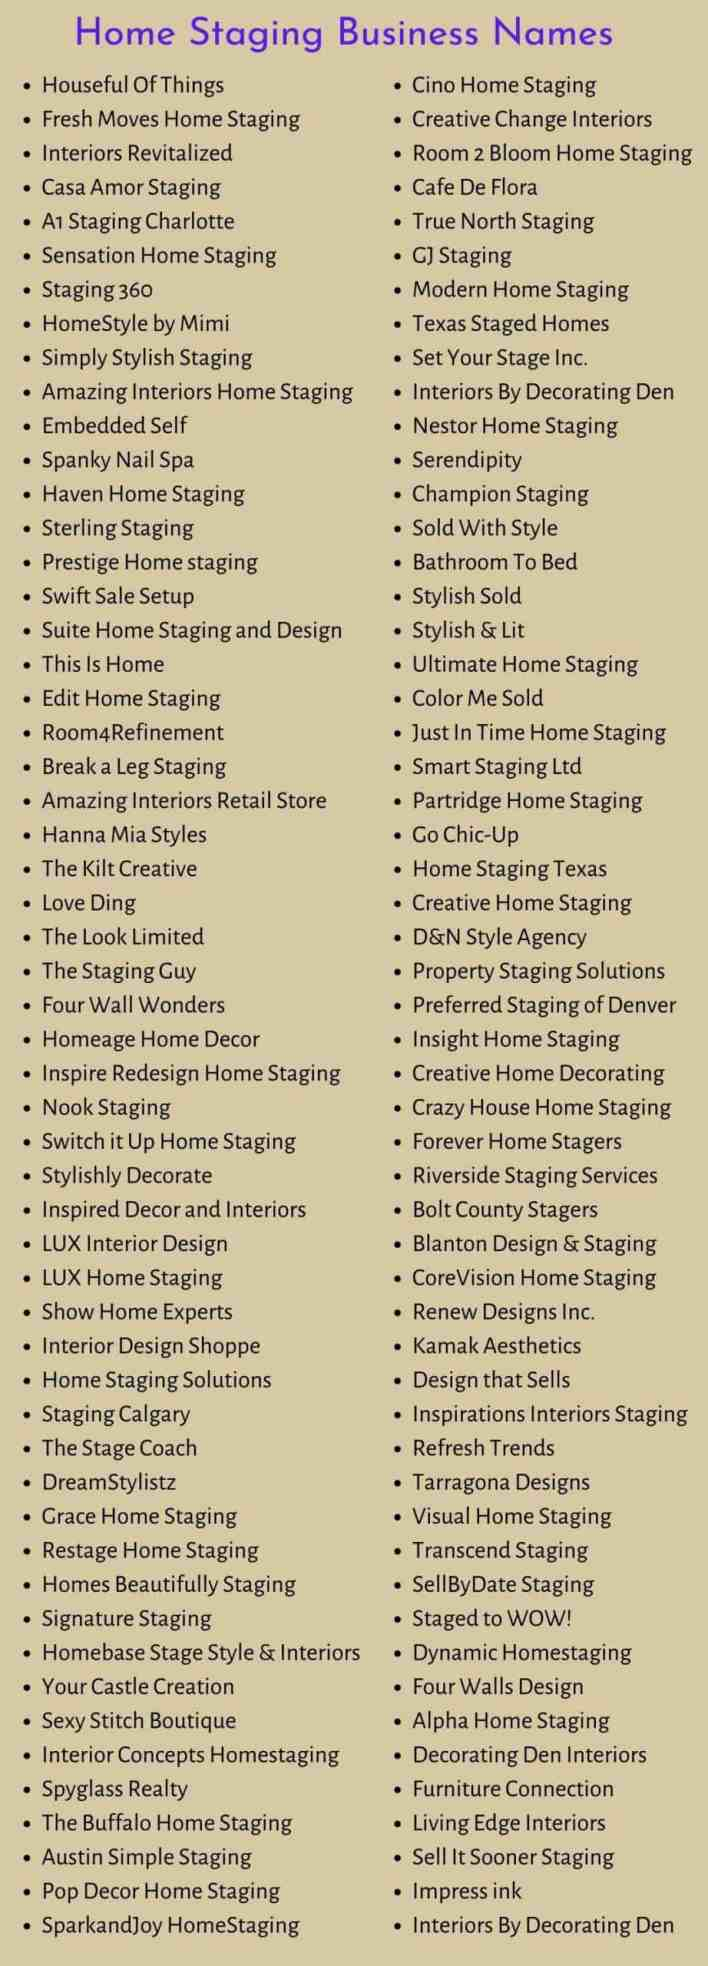 Home Staging Business Names